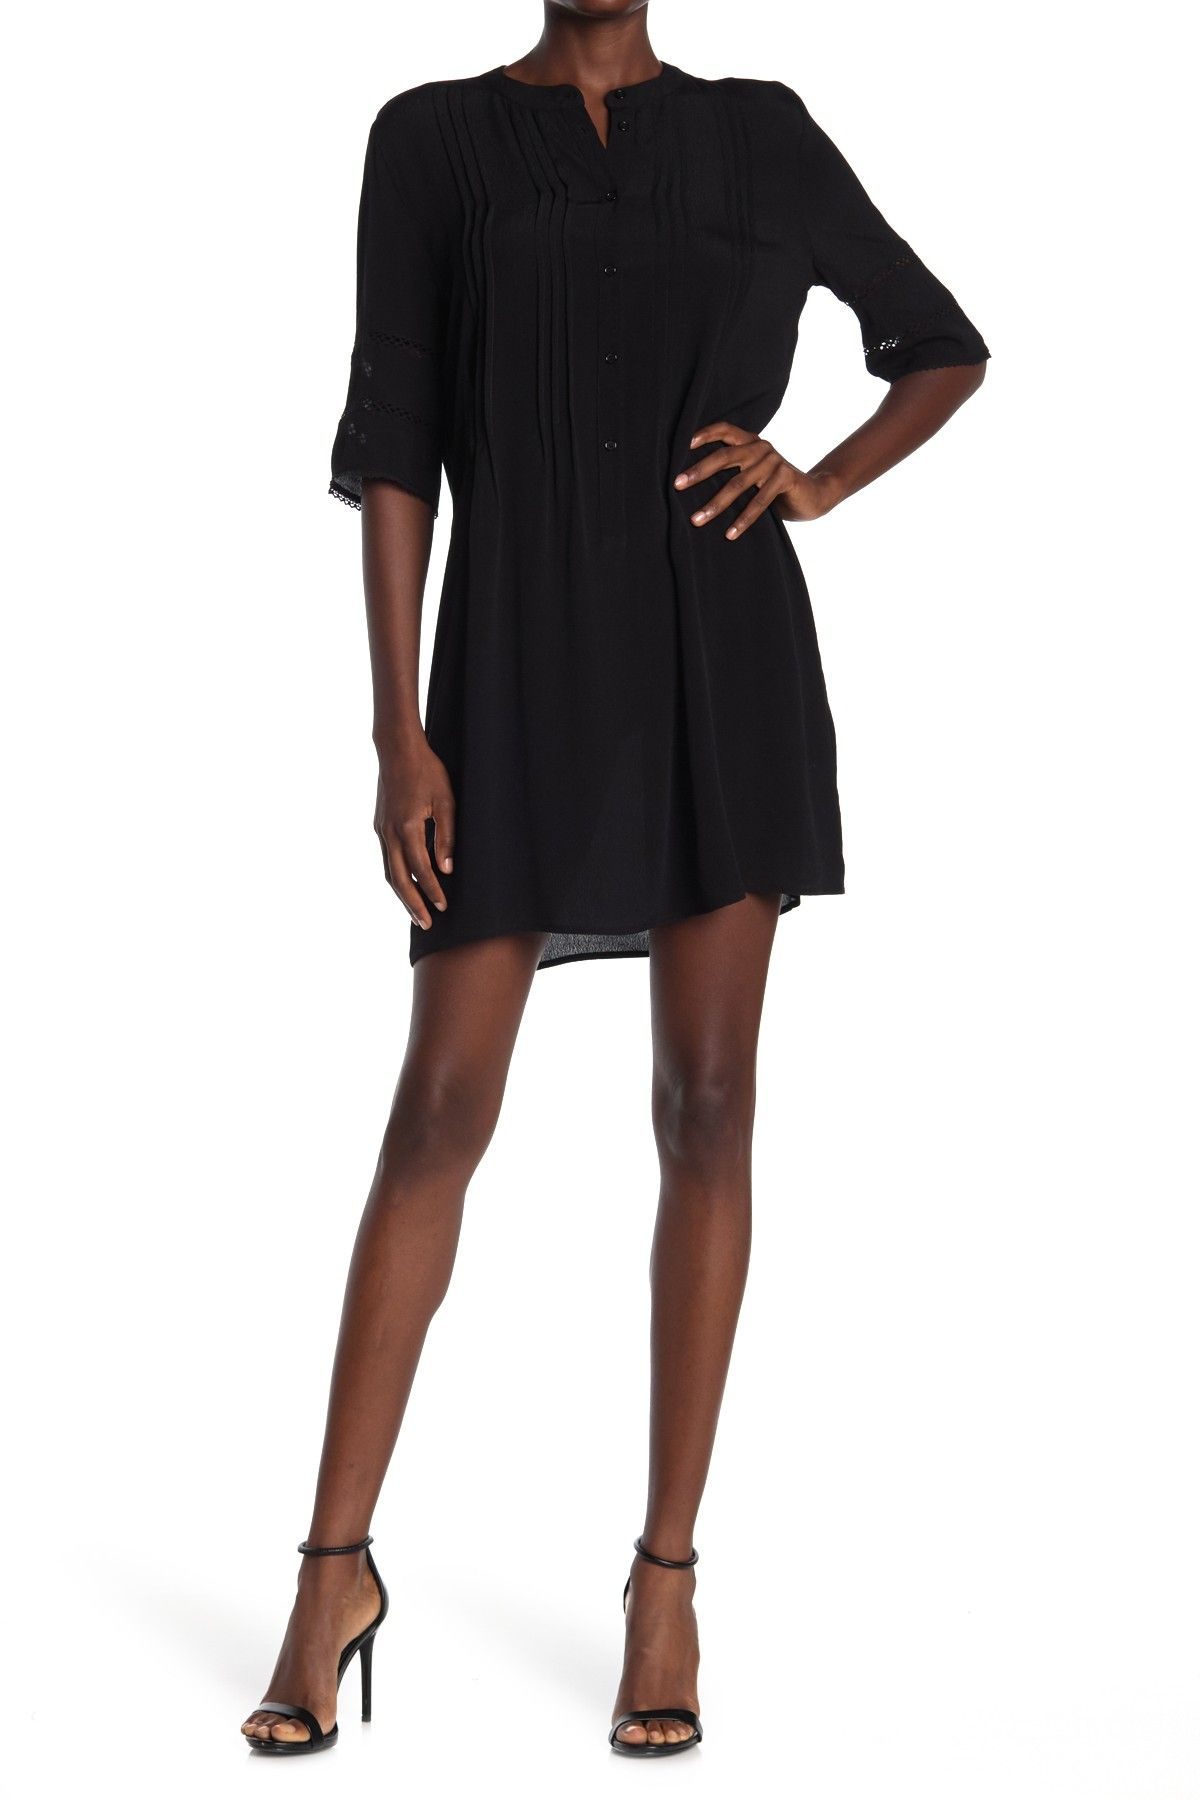 Pintuck 3/4 Sleeve Shirt Dress by Collective Concepts on @nordstrom_rack